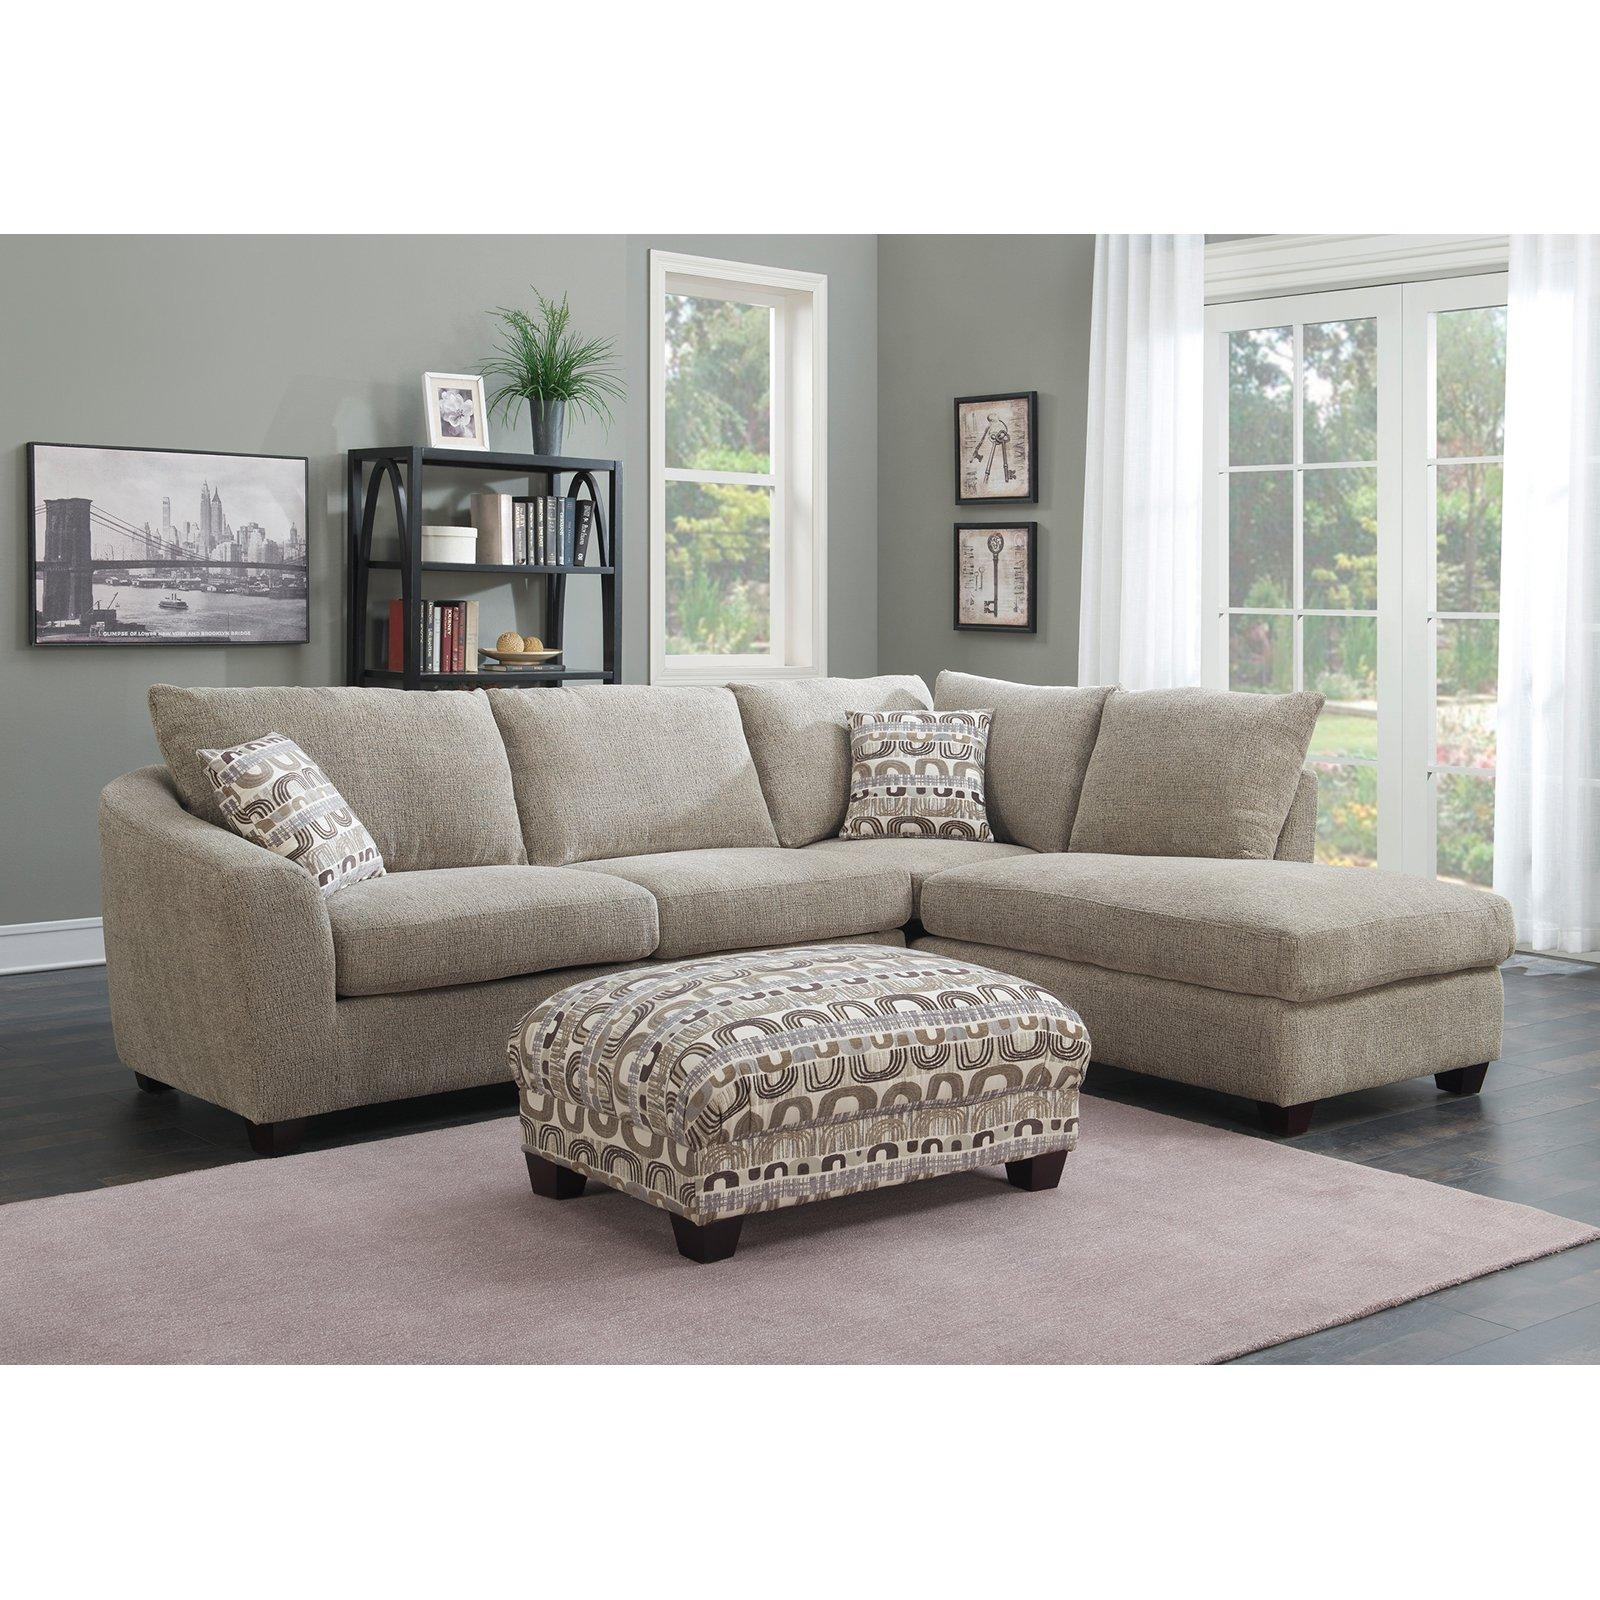 Sofas : Fabulous Sectional With Chaise 2 Piece Sectional Grey In Small 2 Piece Sectional Sofas (Image 16 of 23)